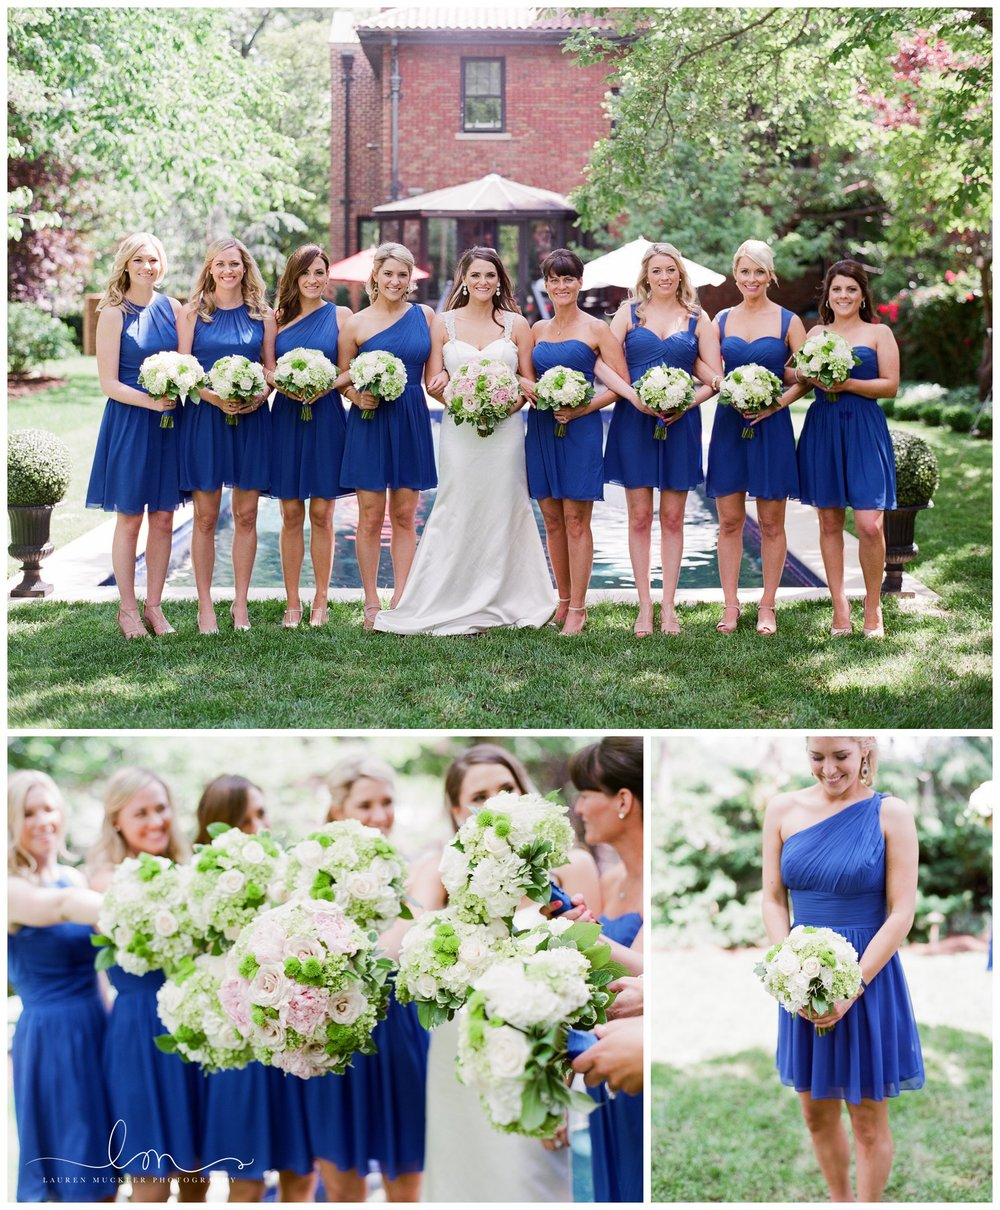 lauren muckler photography_fine art film wedding photography_st louis_photography_0223.jpg